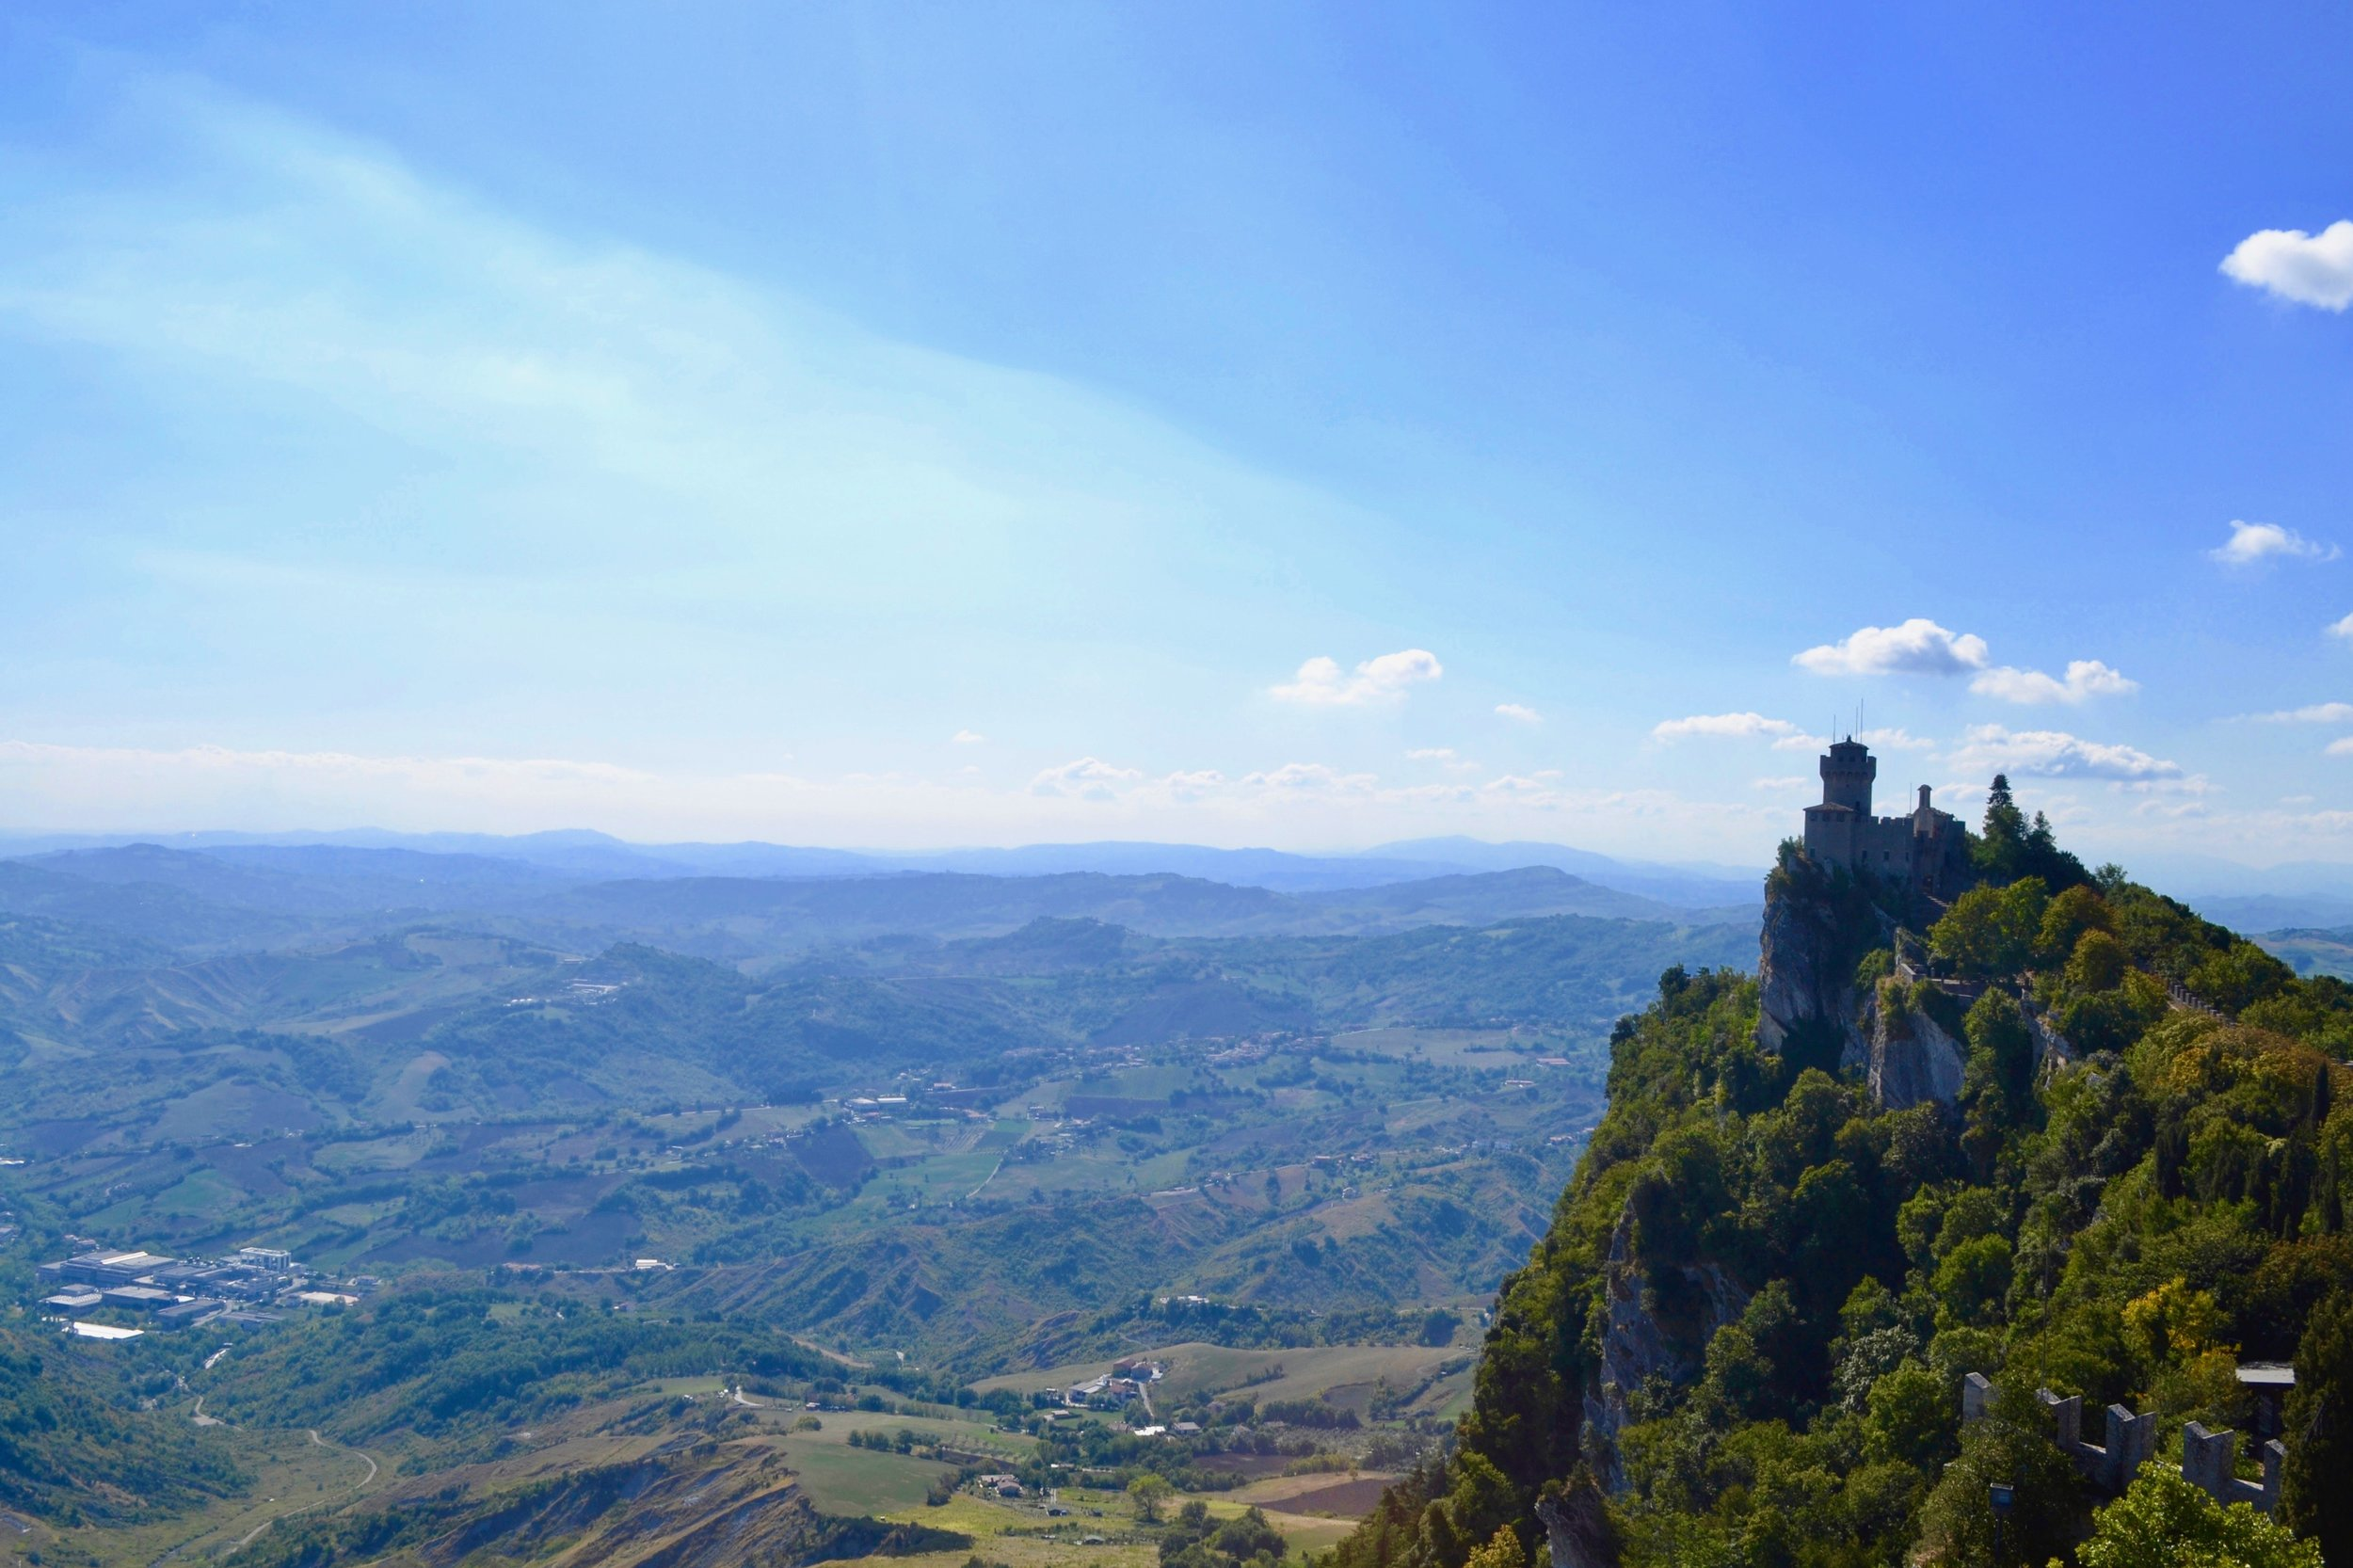 Cesta Tower, which is one of the three towers in San Marino